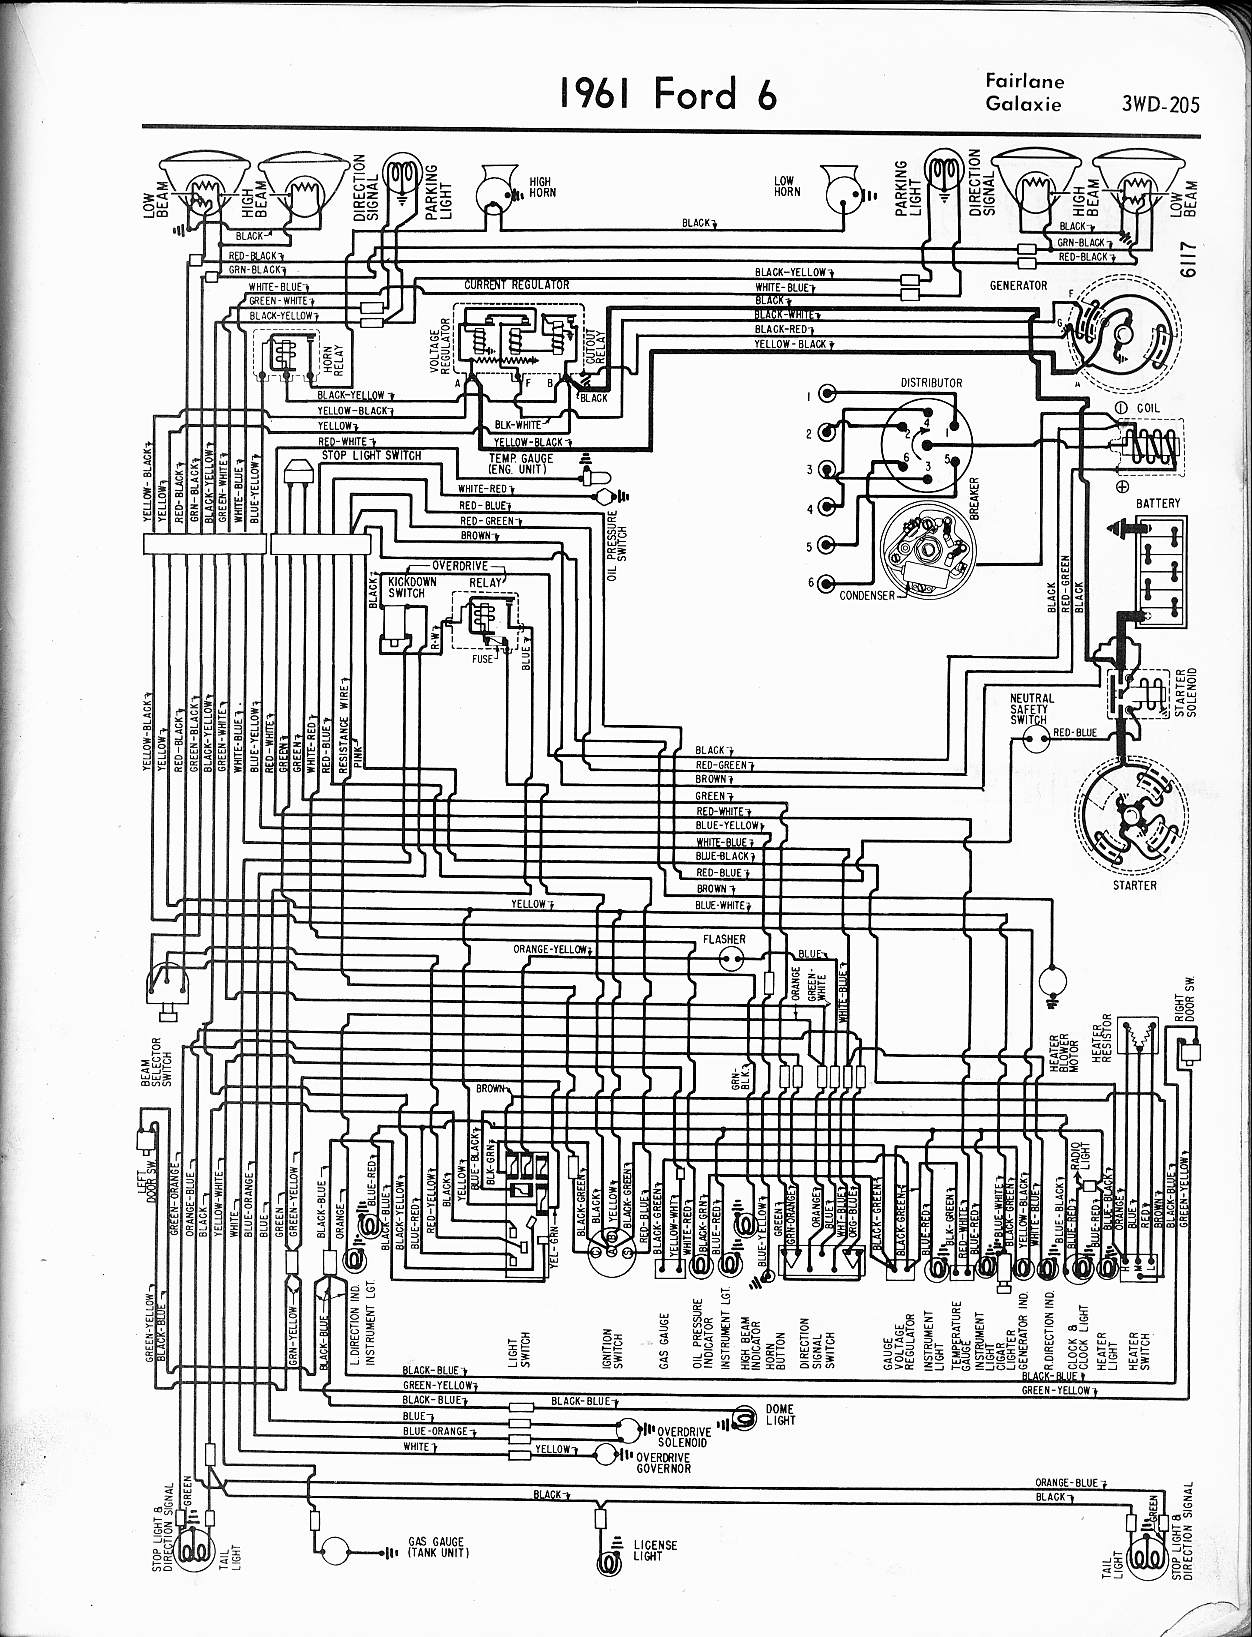 Ford Falcon Ignition Wiring Diagram Auto Electrical Au Ute Car Switch Ranchero Xg